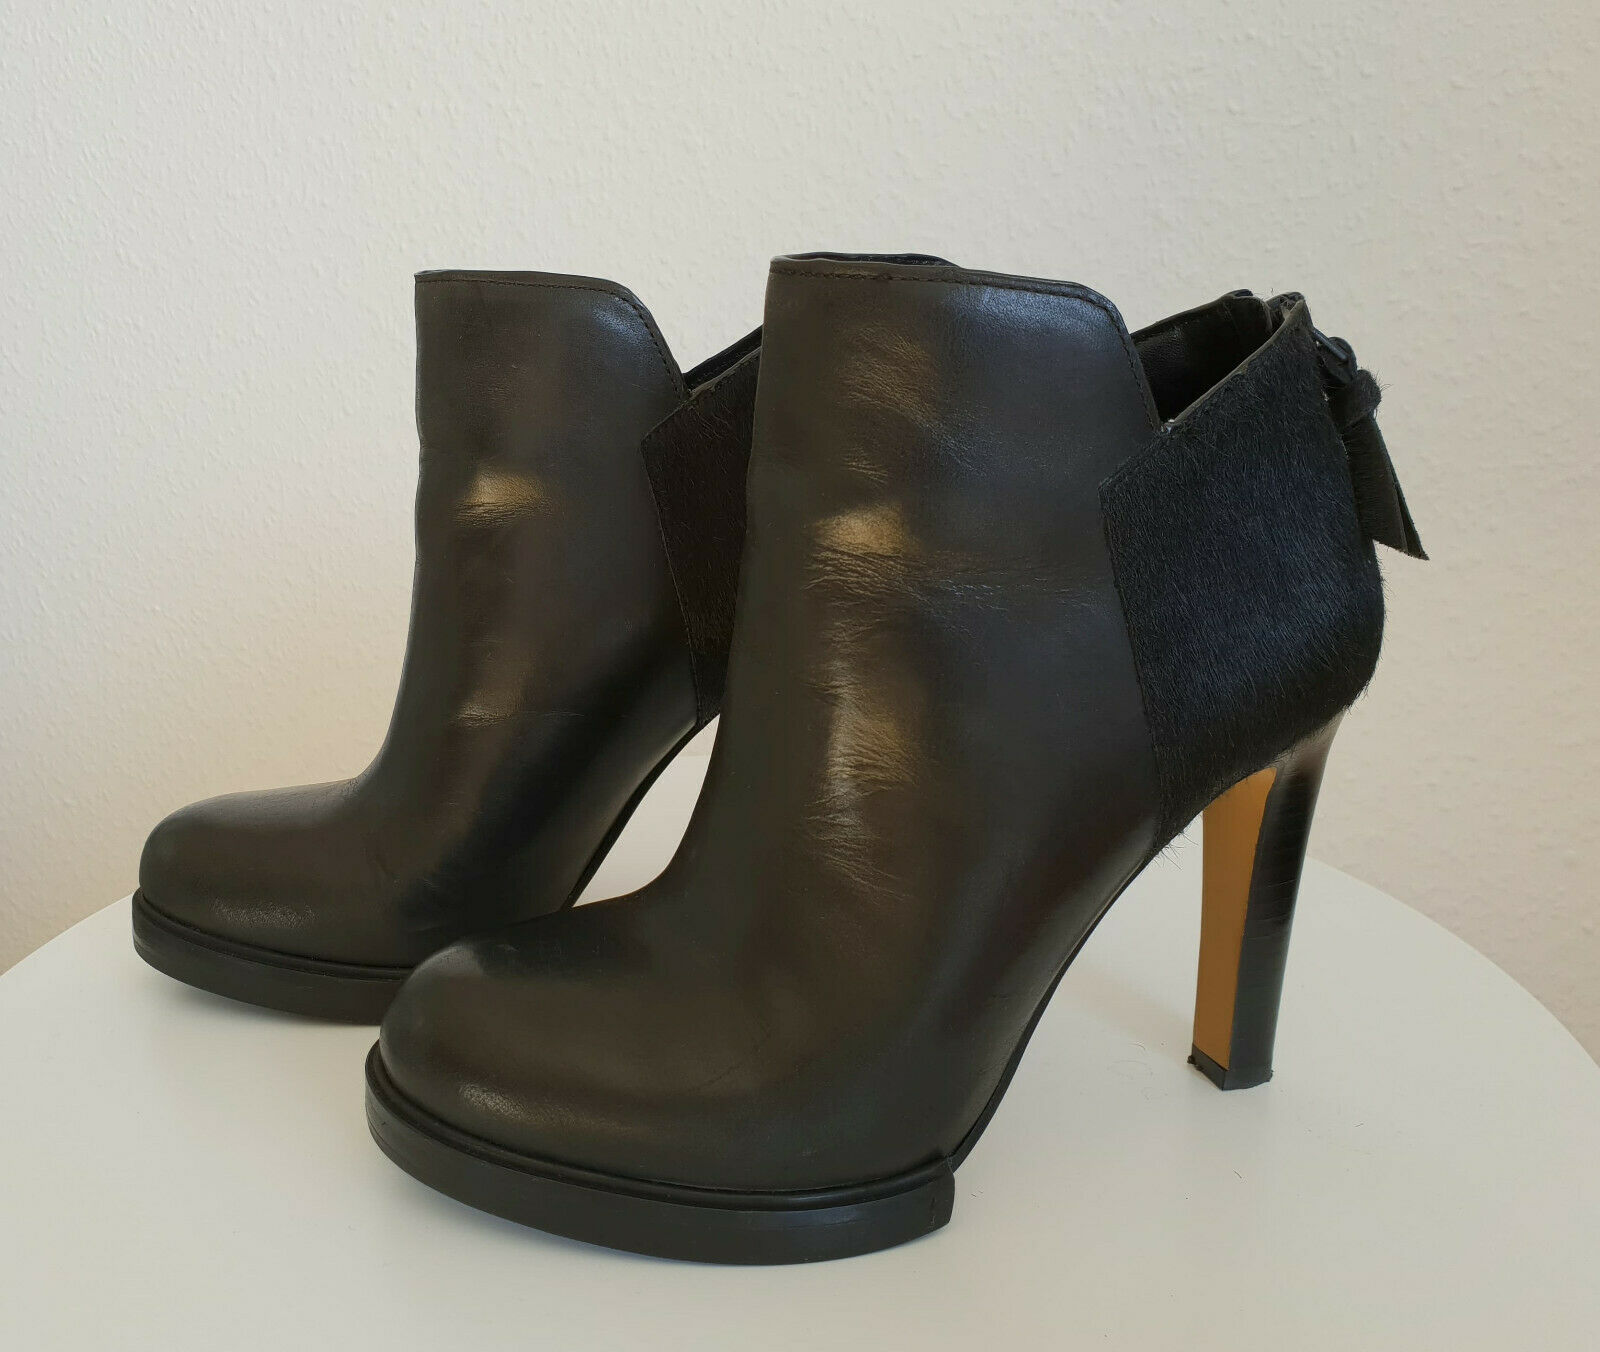 Stiefelette  Becca    French Connection schwarz Gr. 36 TOP Zustand NP   0e9c37